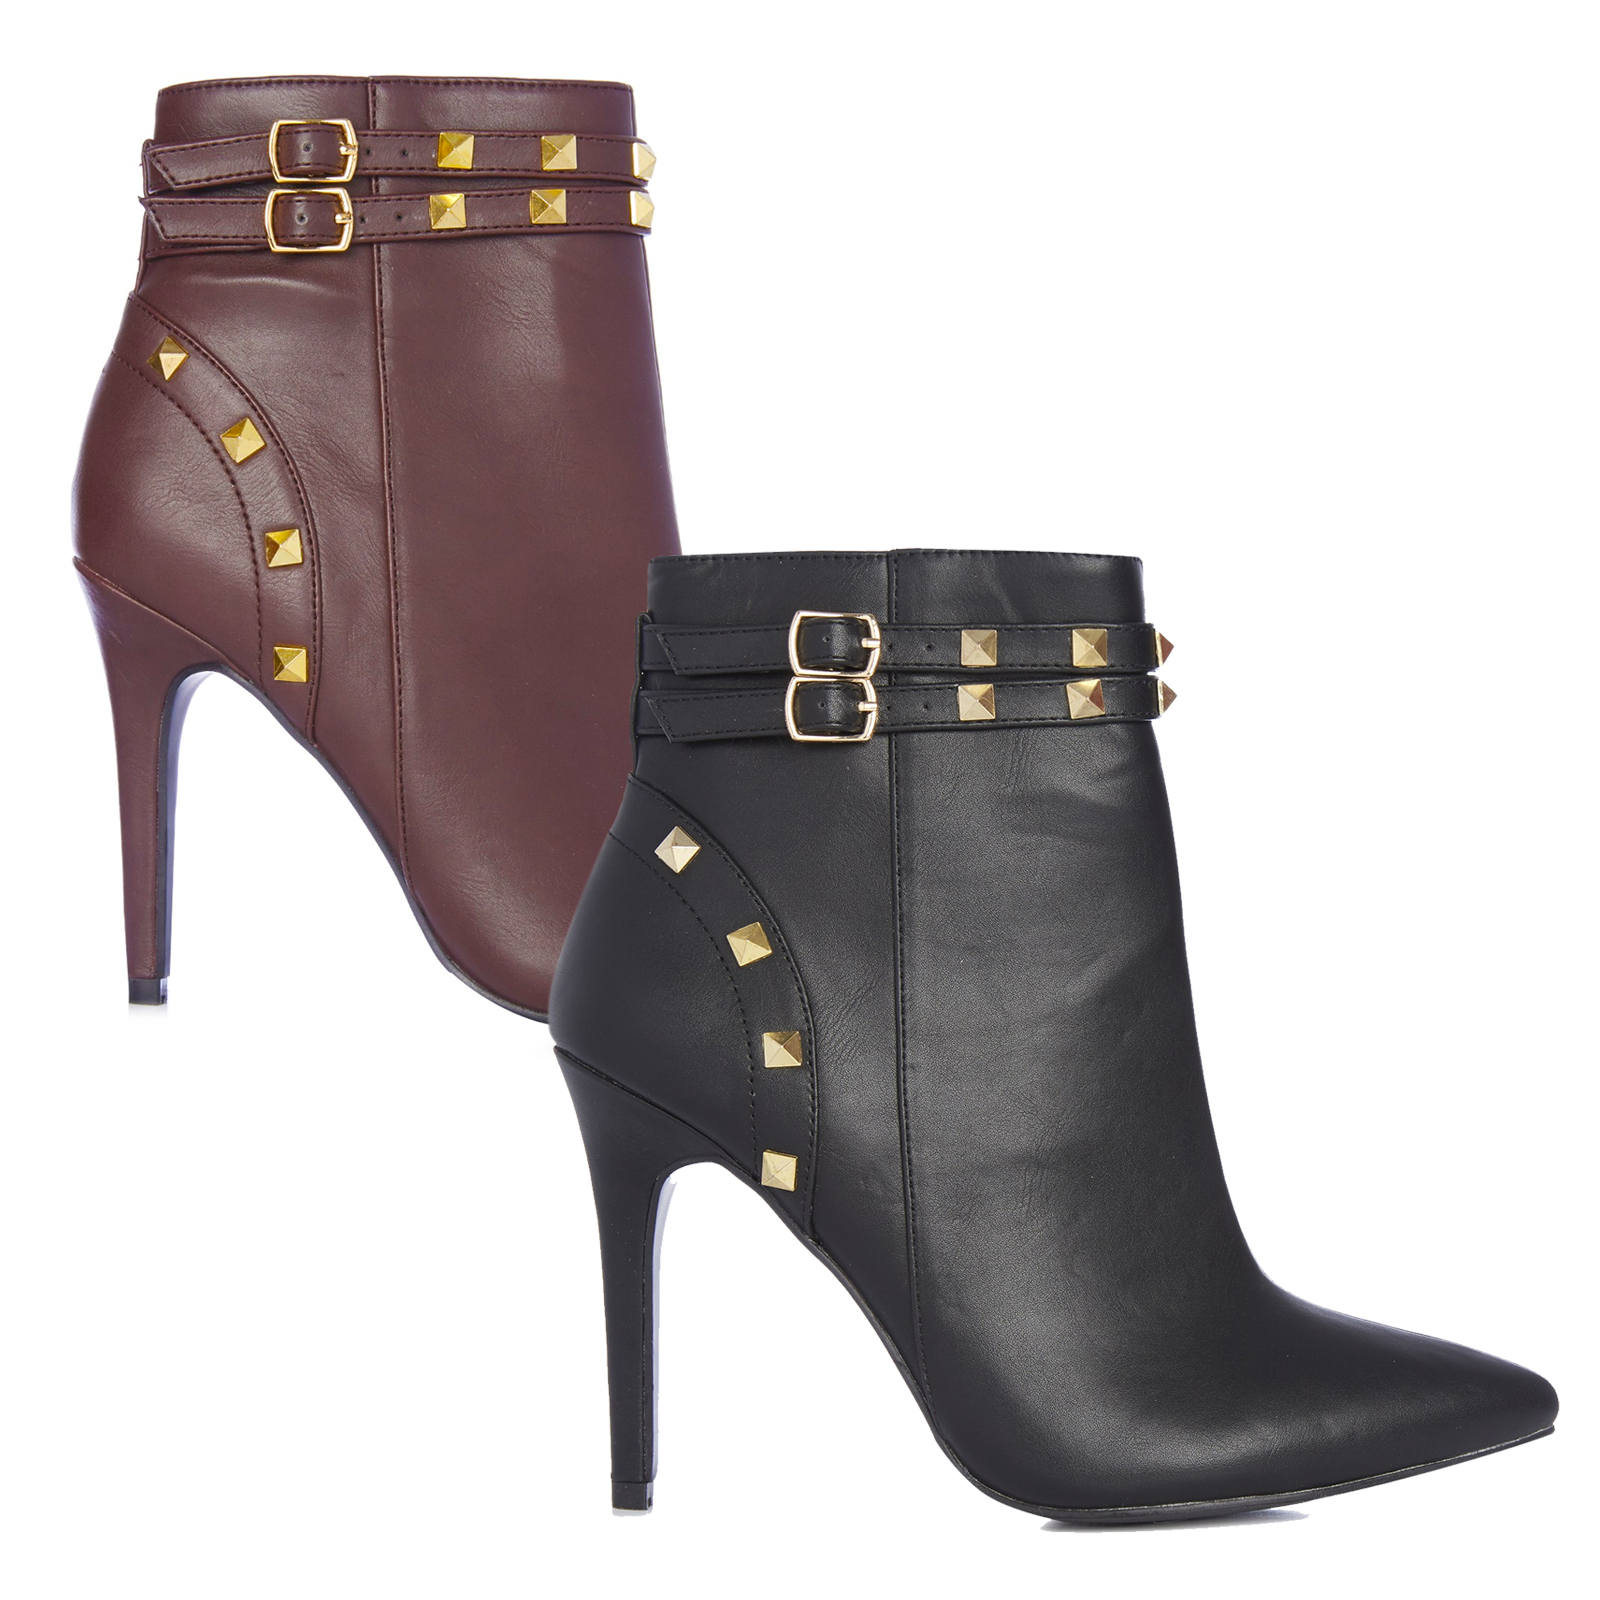 104608a050b6 Womens Stiletto Ankle Boots Studded High Heel Black Burgundy Size 3 ...